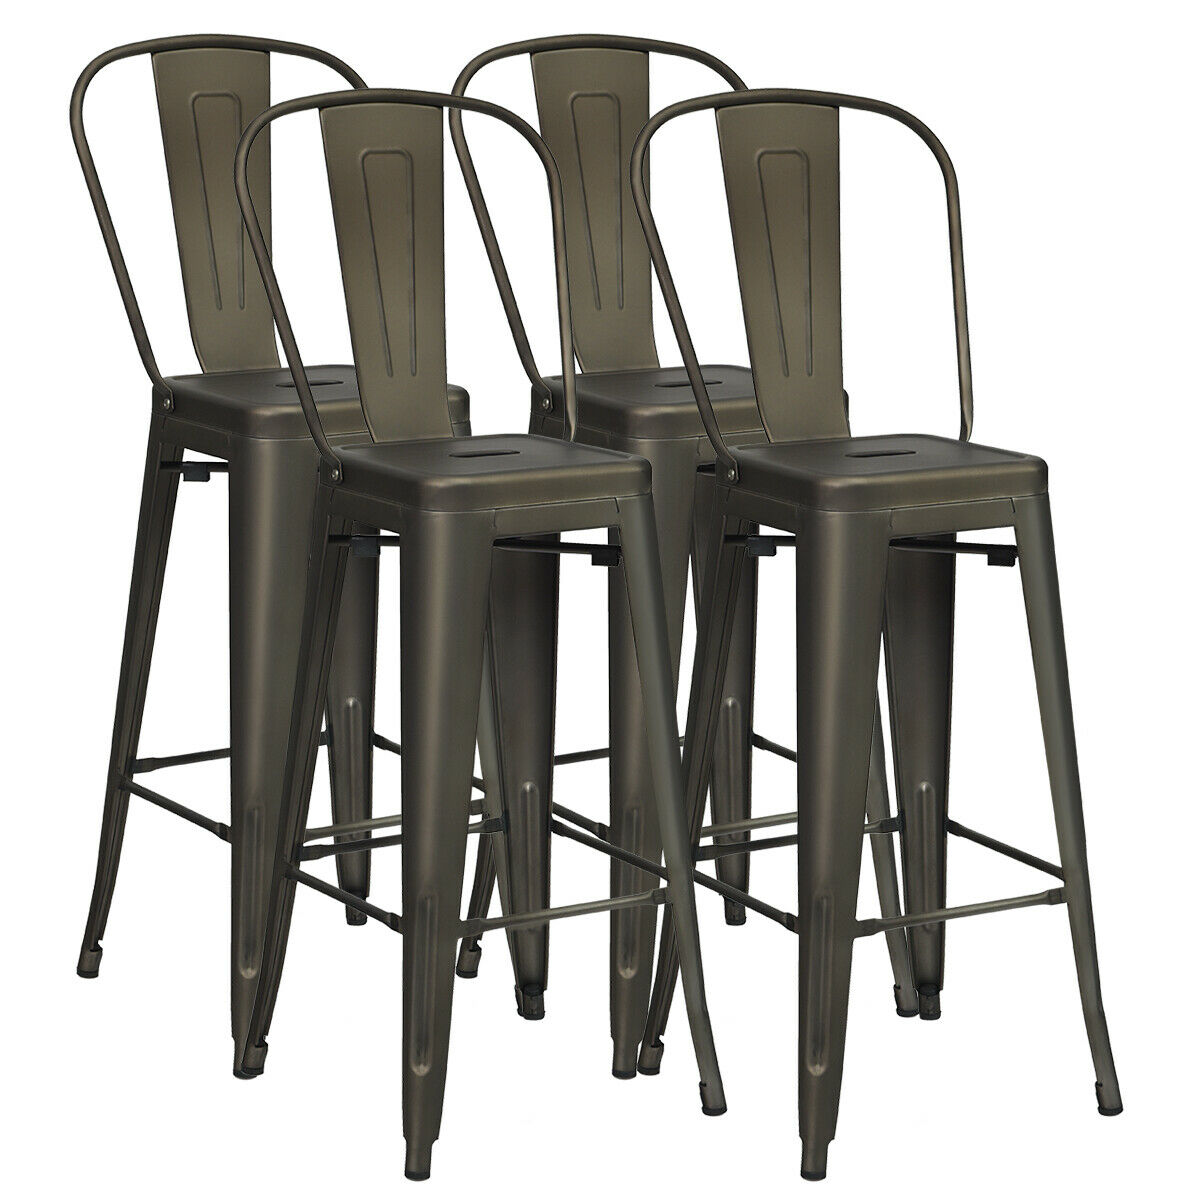 30 Metal Frame Tolix Style Bar Stools Industrial Chair With Back Set Of 4 For Sale Online Ebay